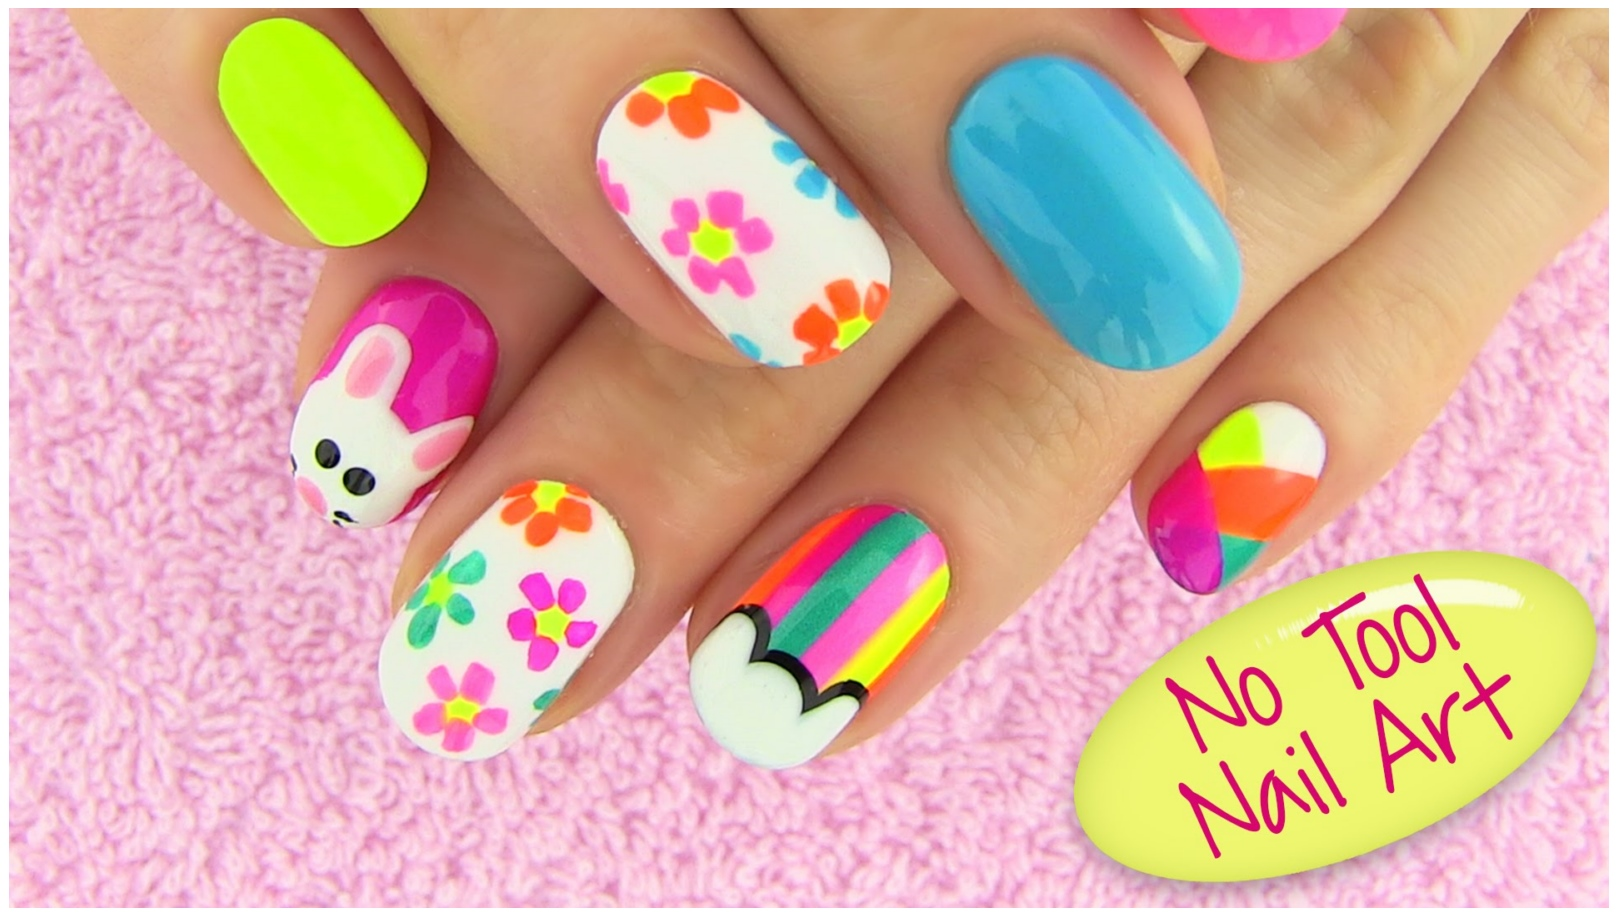 What you Get new Fashion steps with little aspects like Nails: